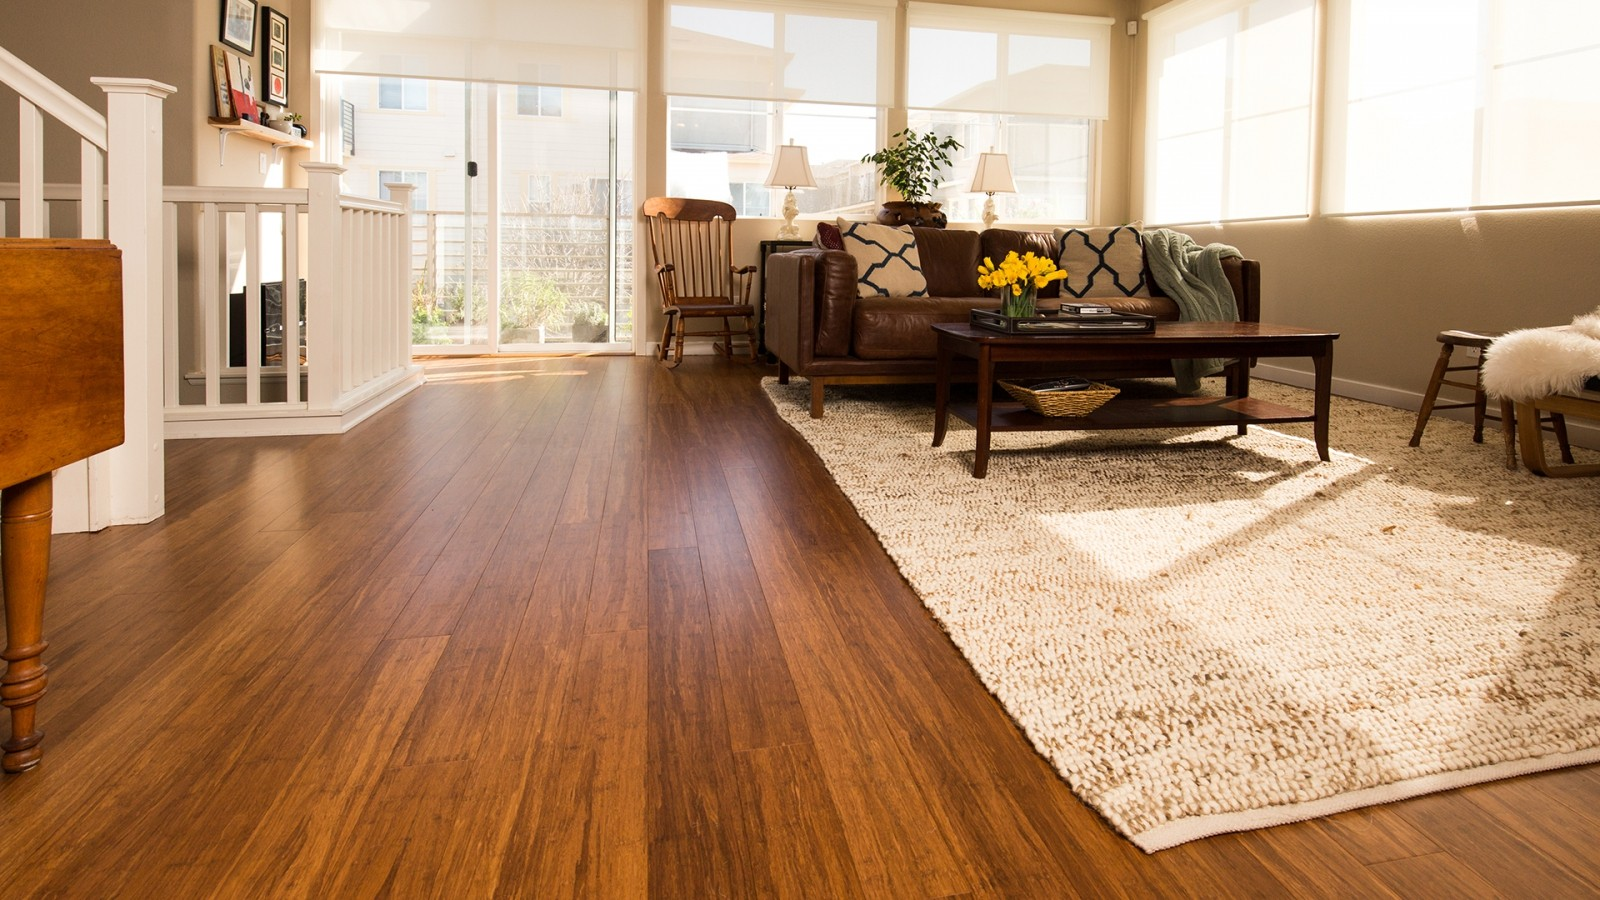 Roberts-Flooring-Services-hardwood-flooring-installation-in-salon